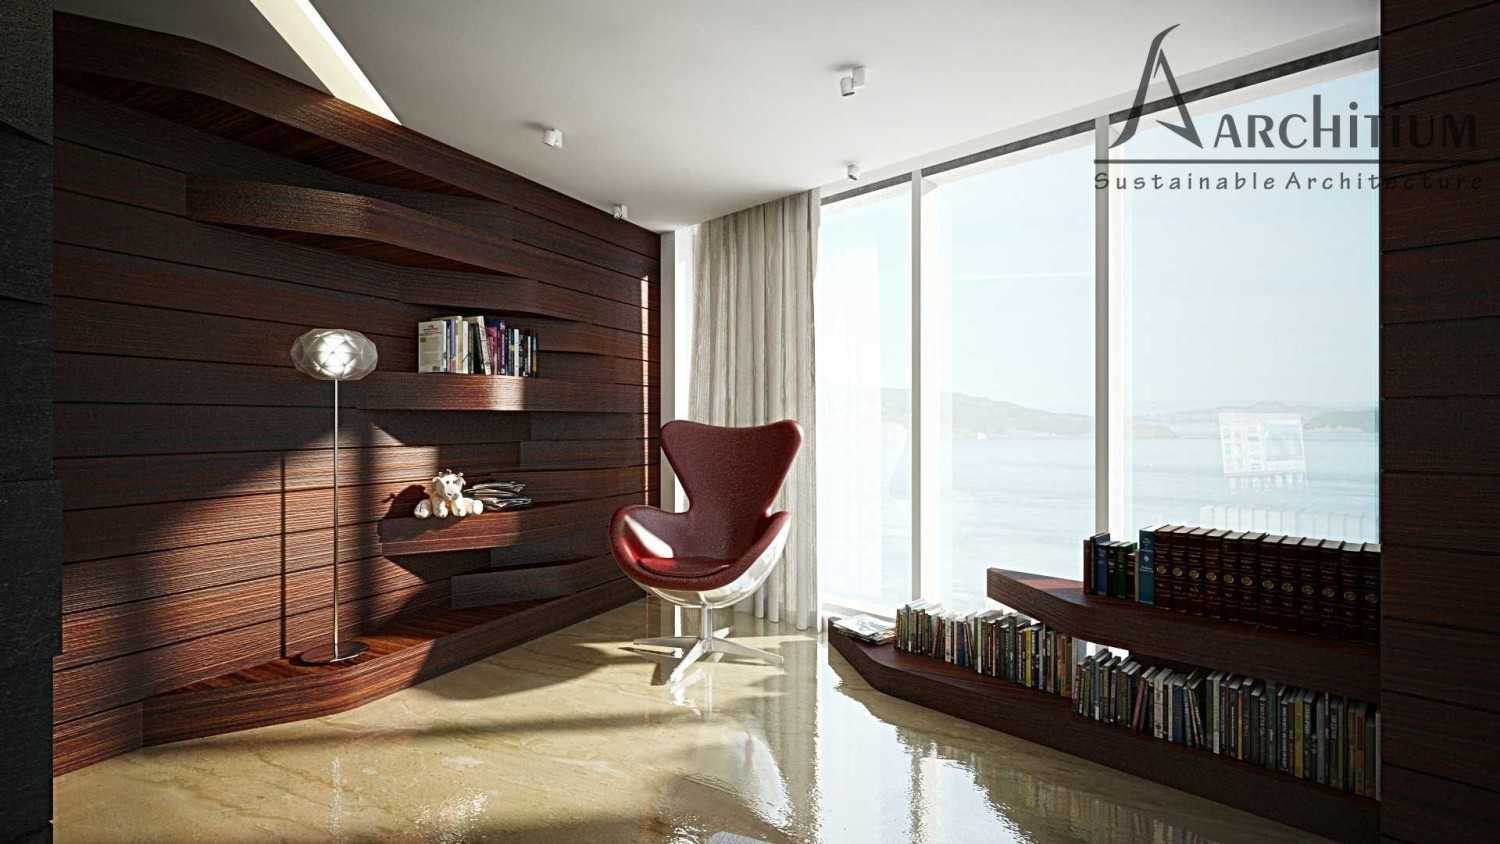 Architium Design Penthouse At Regatta Apartment Regatta Apartment, Jakarta Regatta Apartment, Jakarta Living-Reading Minimalis 27420